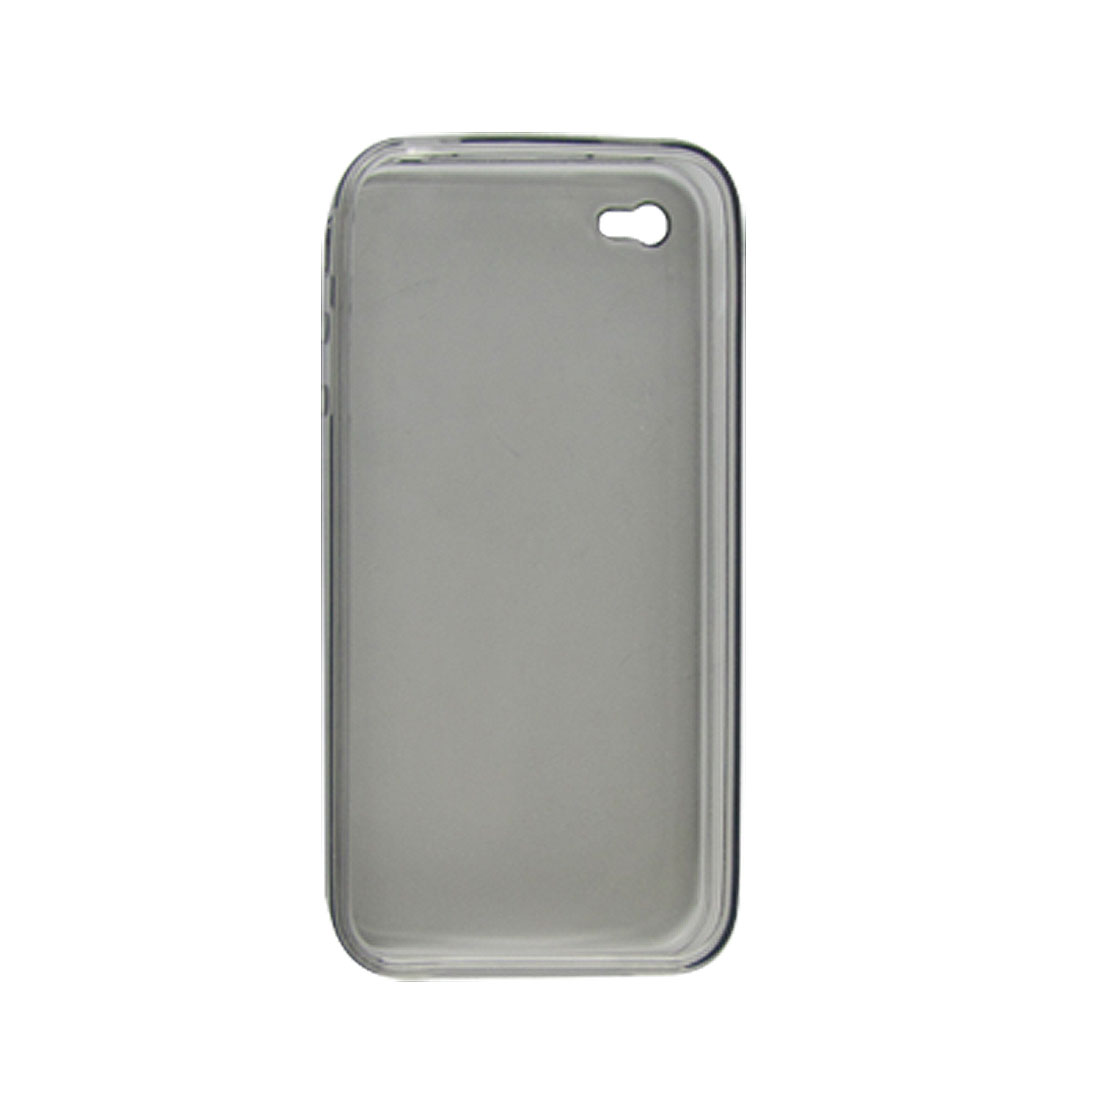 Grey Soft Plastic Protective Case Cover for Apple iPhone 4 4G